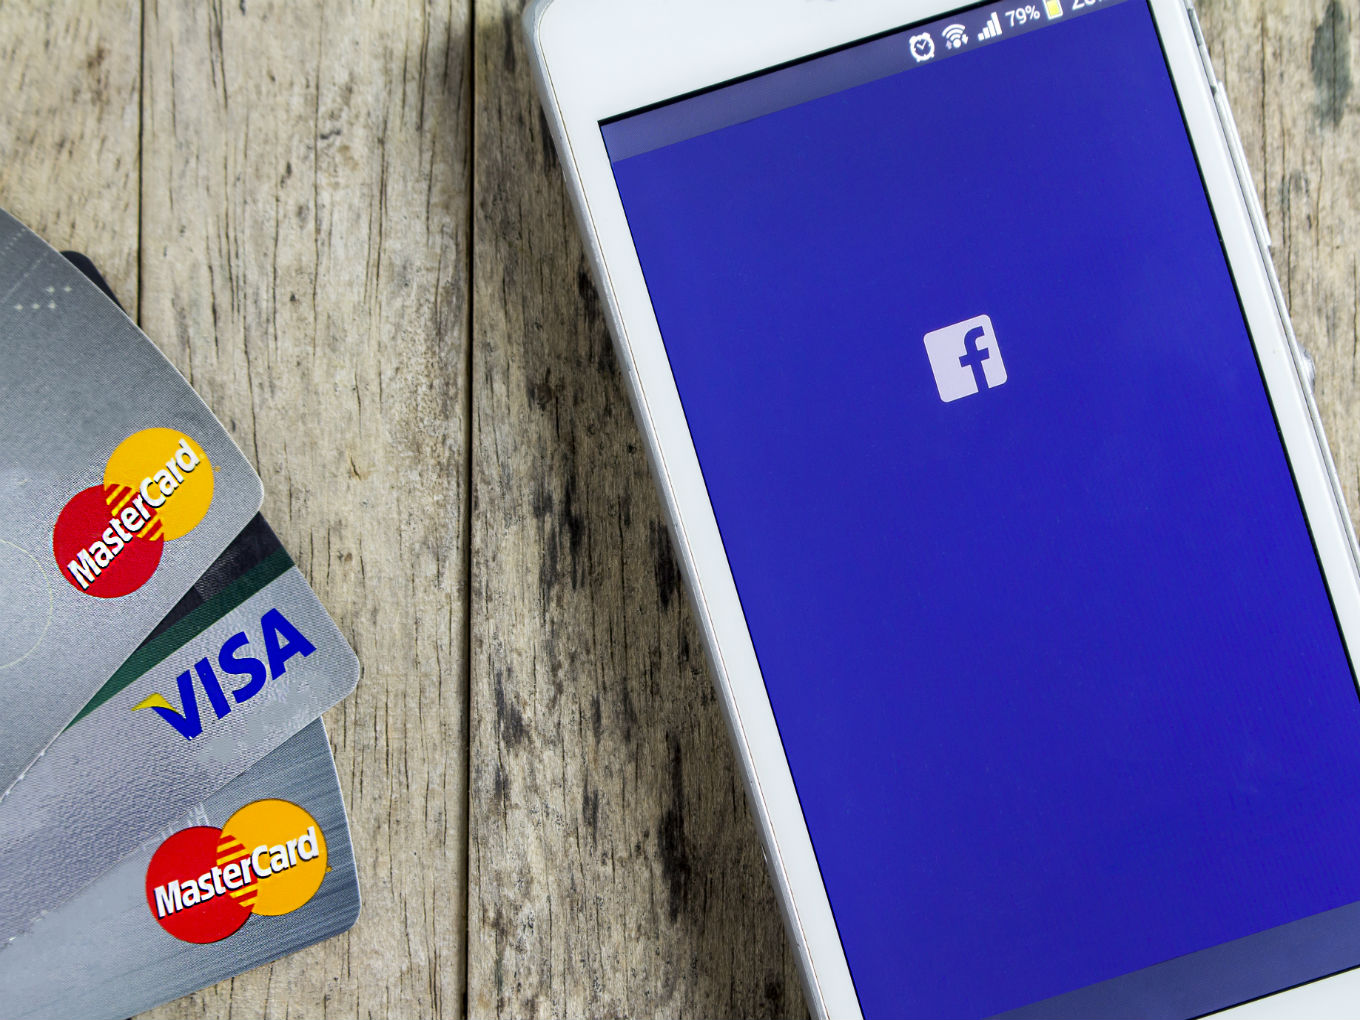 after-whatsapp-is-facebook-an-also-enabling-a-payments-feature